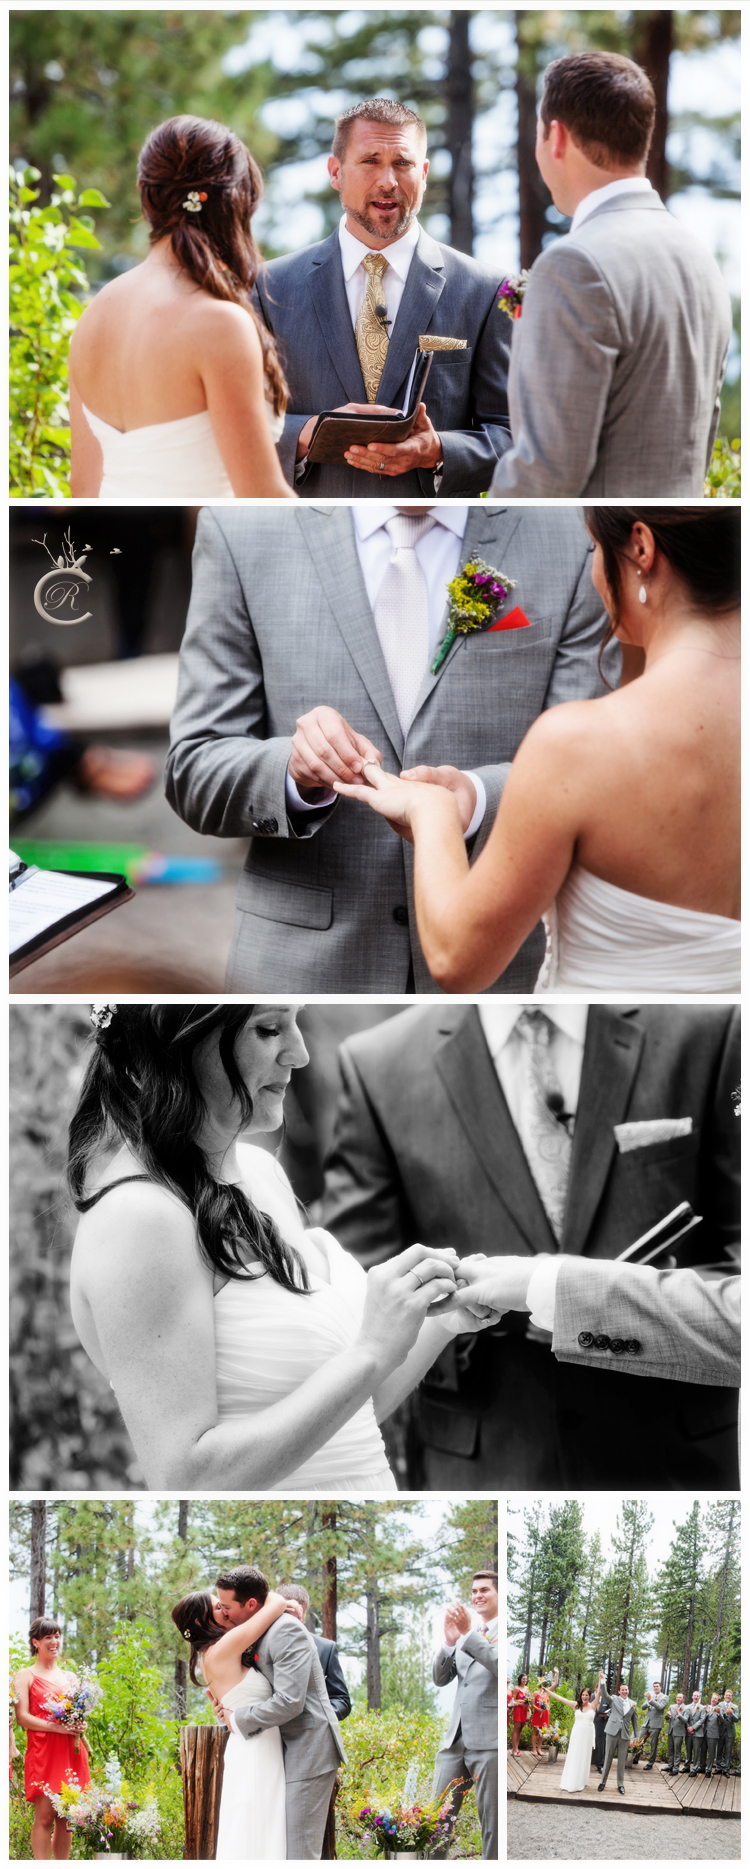 Wedding Ceremony at Bristlecone Lakehouse • Carrie Richards Photography